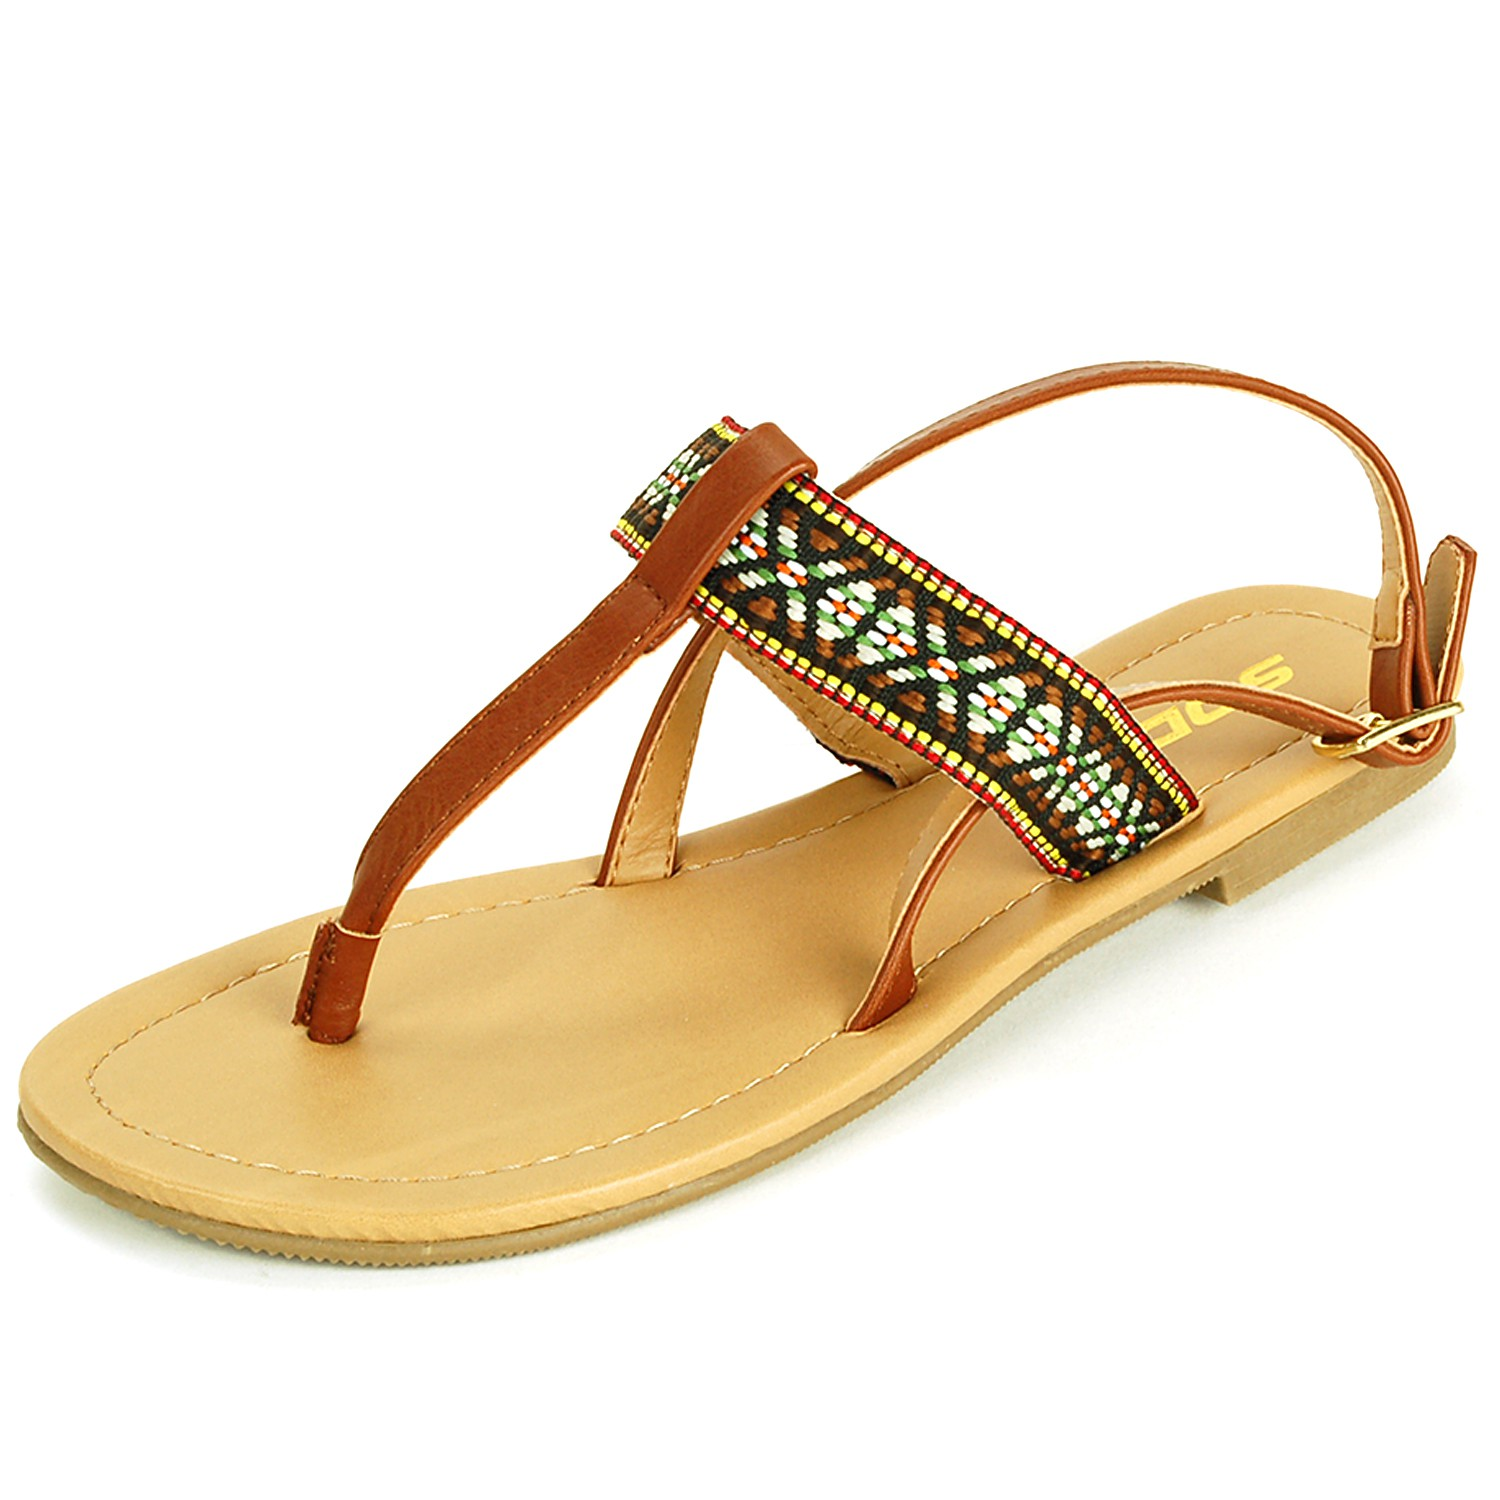 Women's T-Strap Sandals Slingback Thongs Embroidered Strap ...